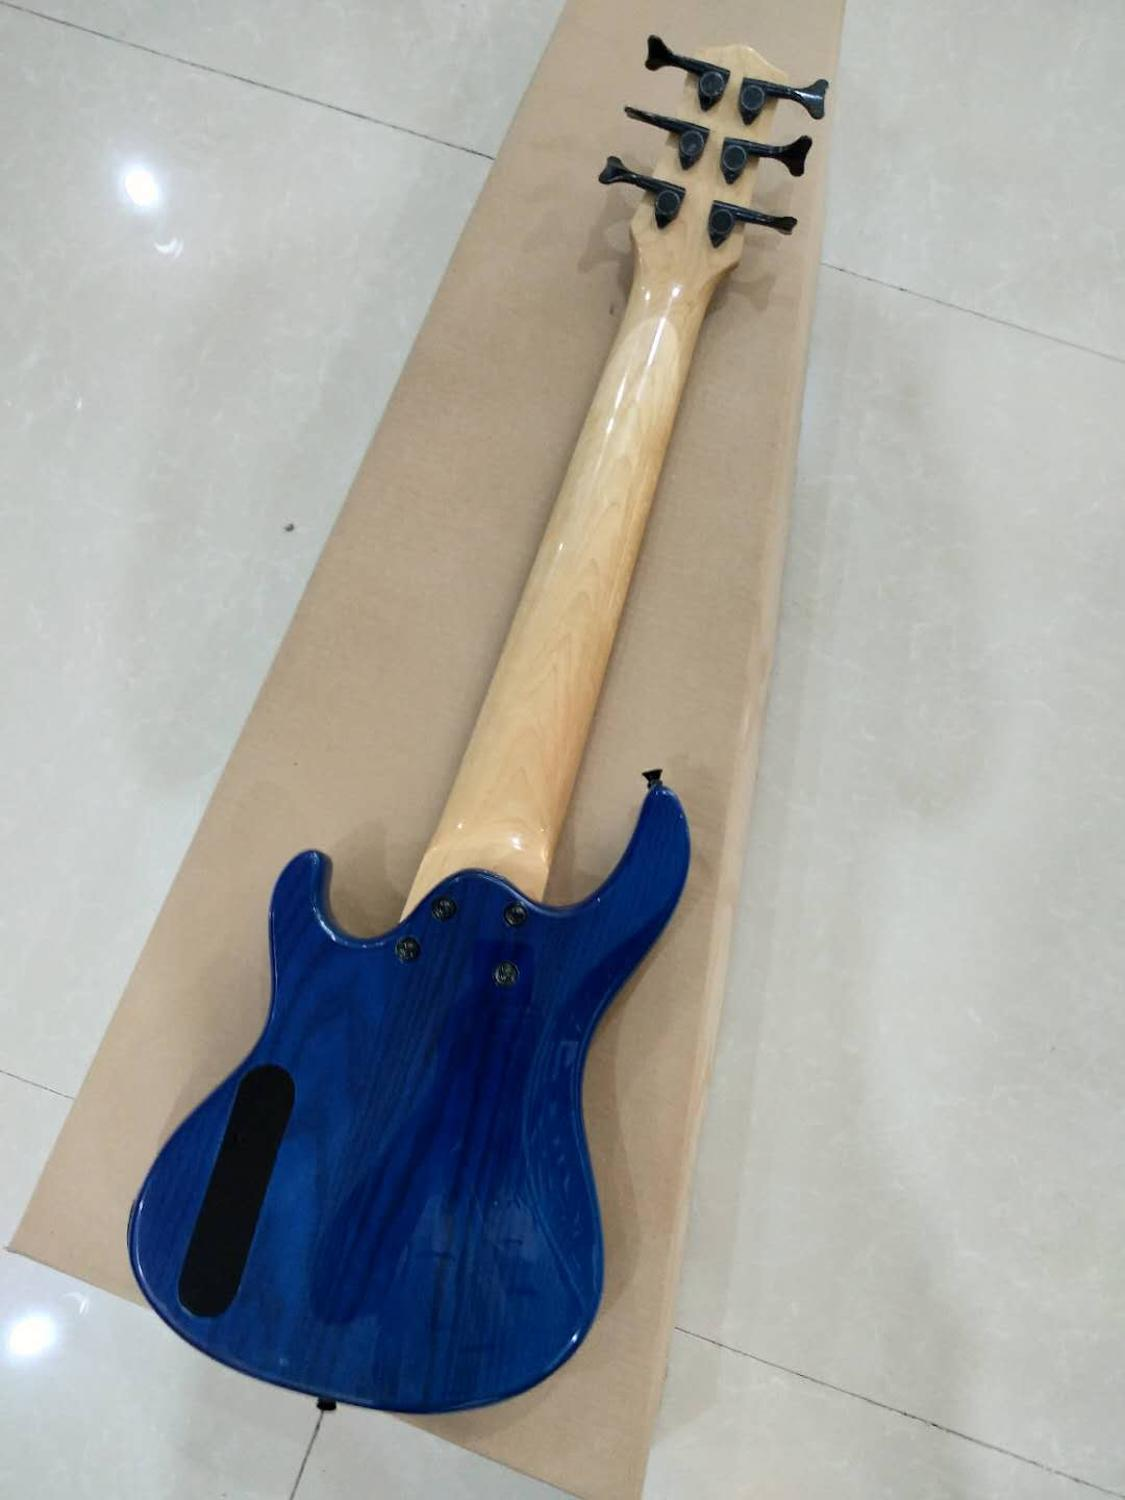 Customized 6-string mini bass electric guitar,648 string pitch, white wax xylophone body, 4-string, 5-string and 6-string, multi enlarge